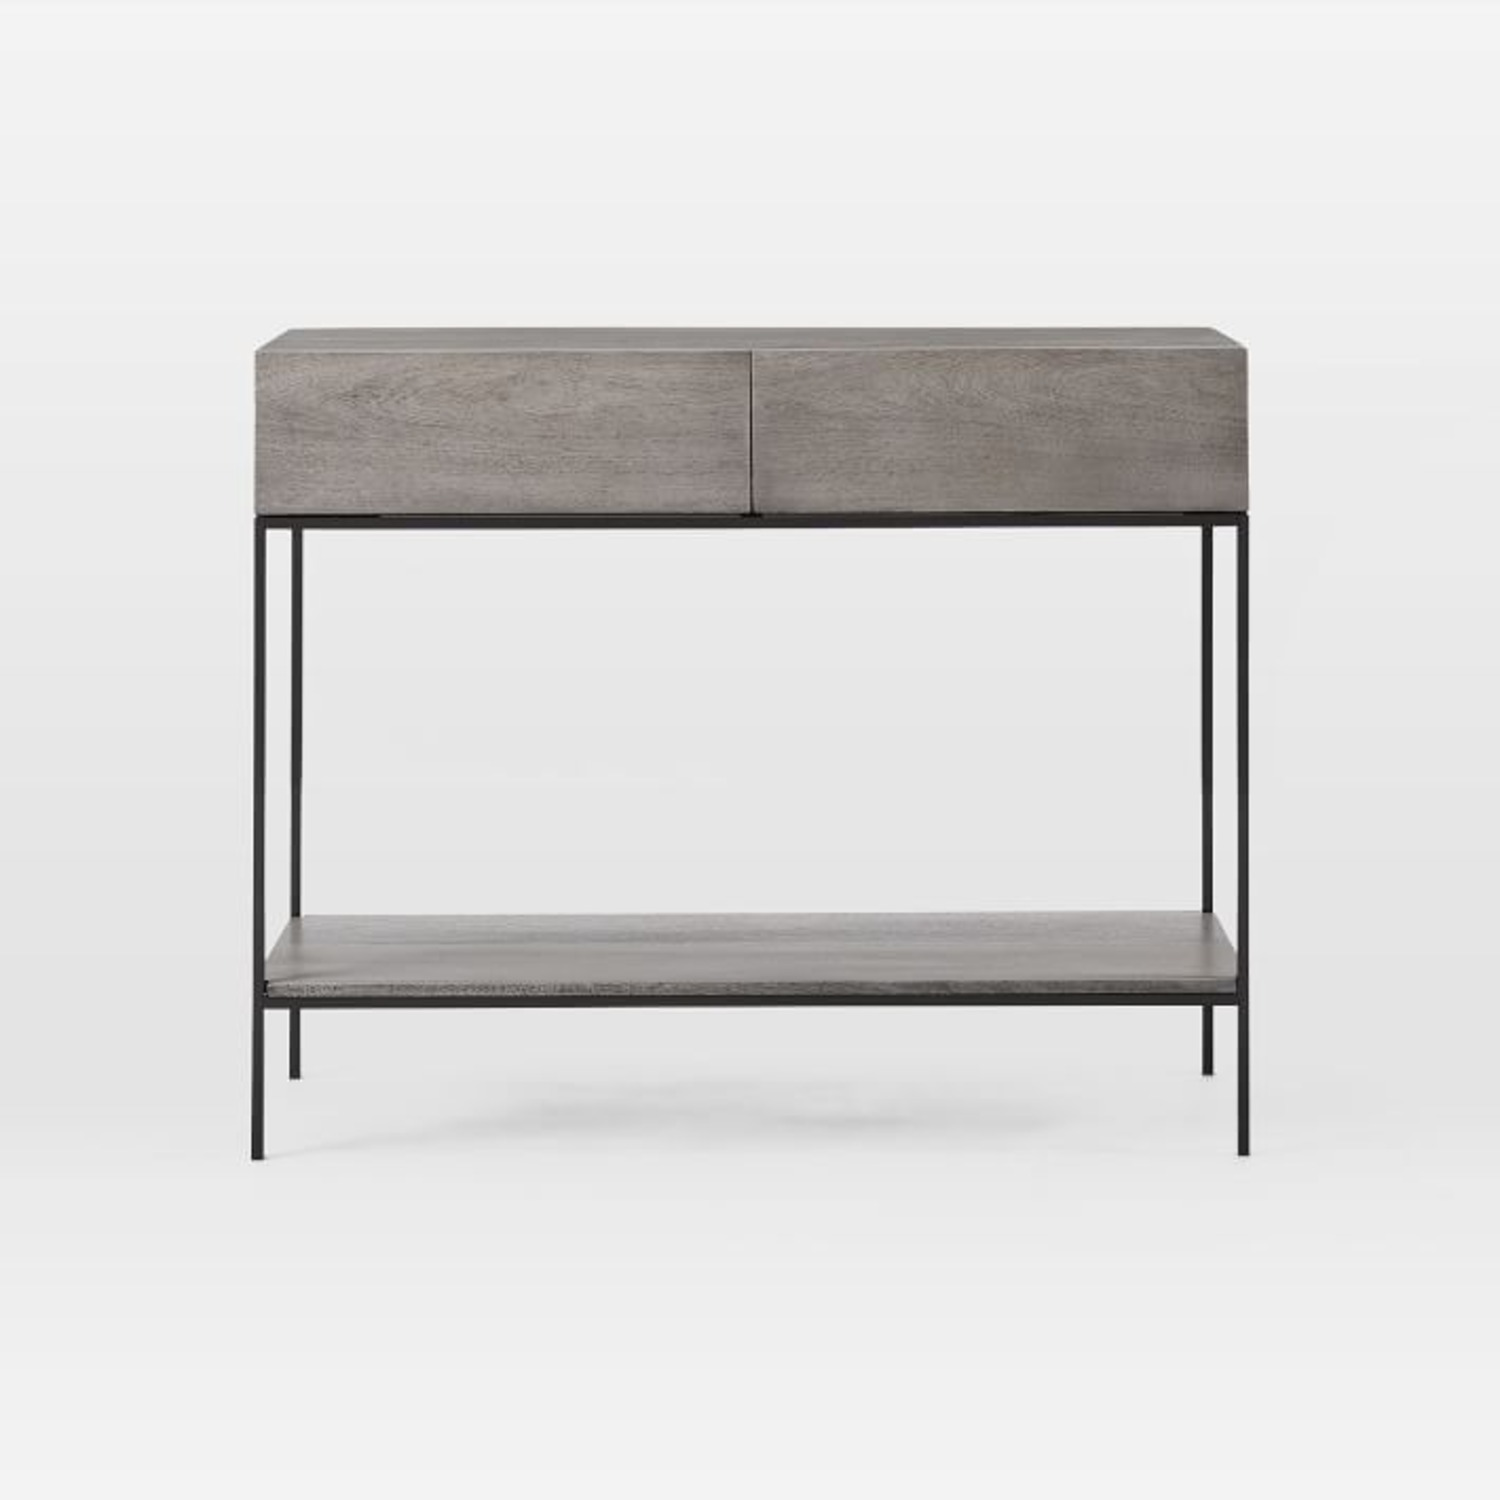 West Elm Industrial Storage Console, Gray - image-3